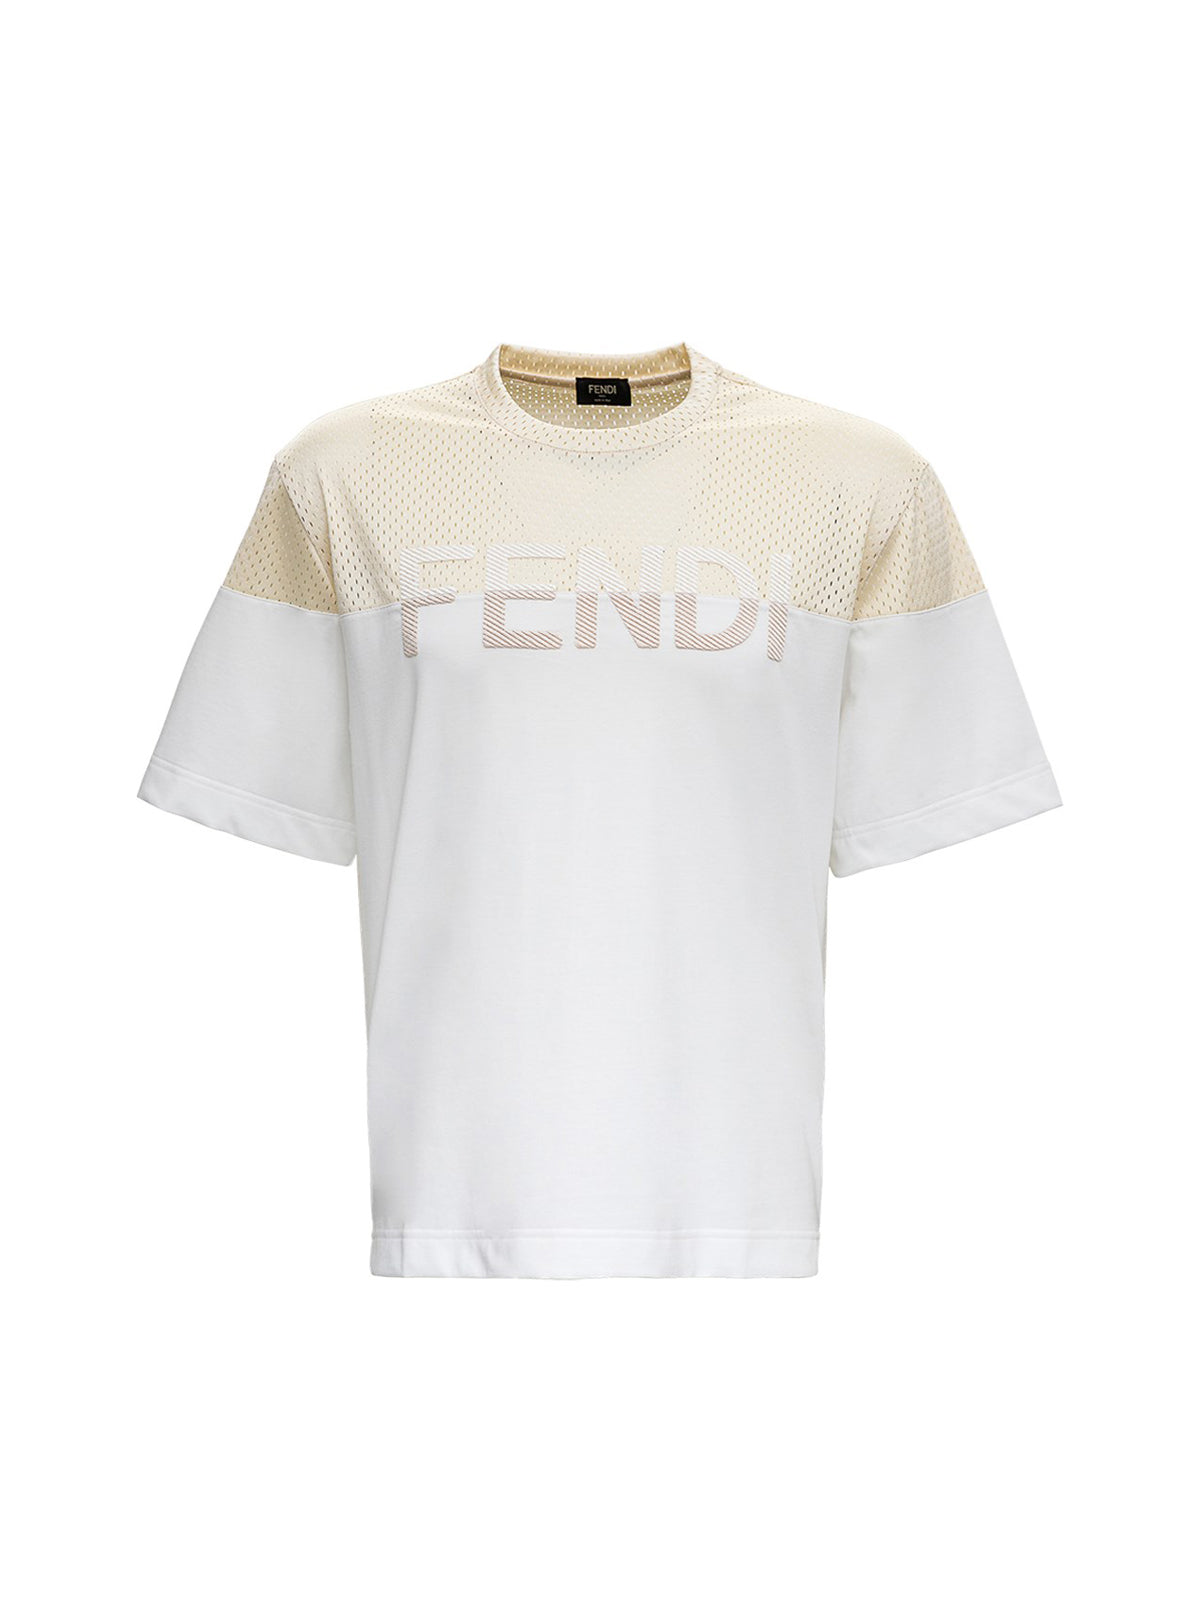 JERSEY T-SHIRT AND MESH WITH LOGO